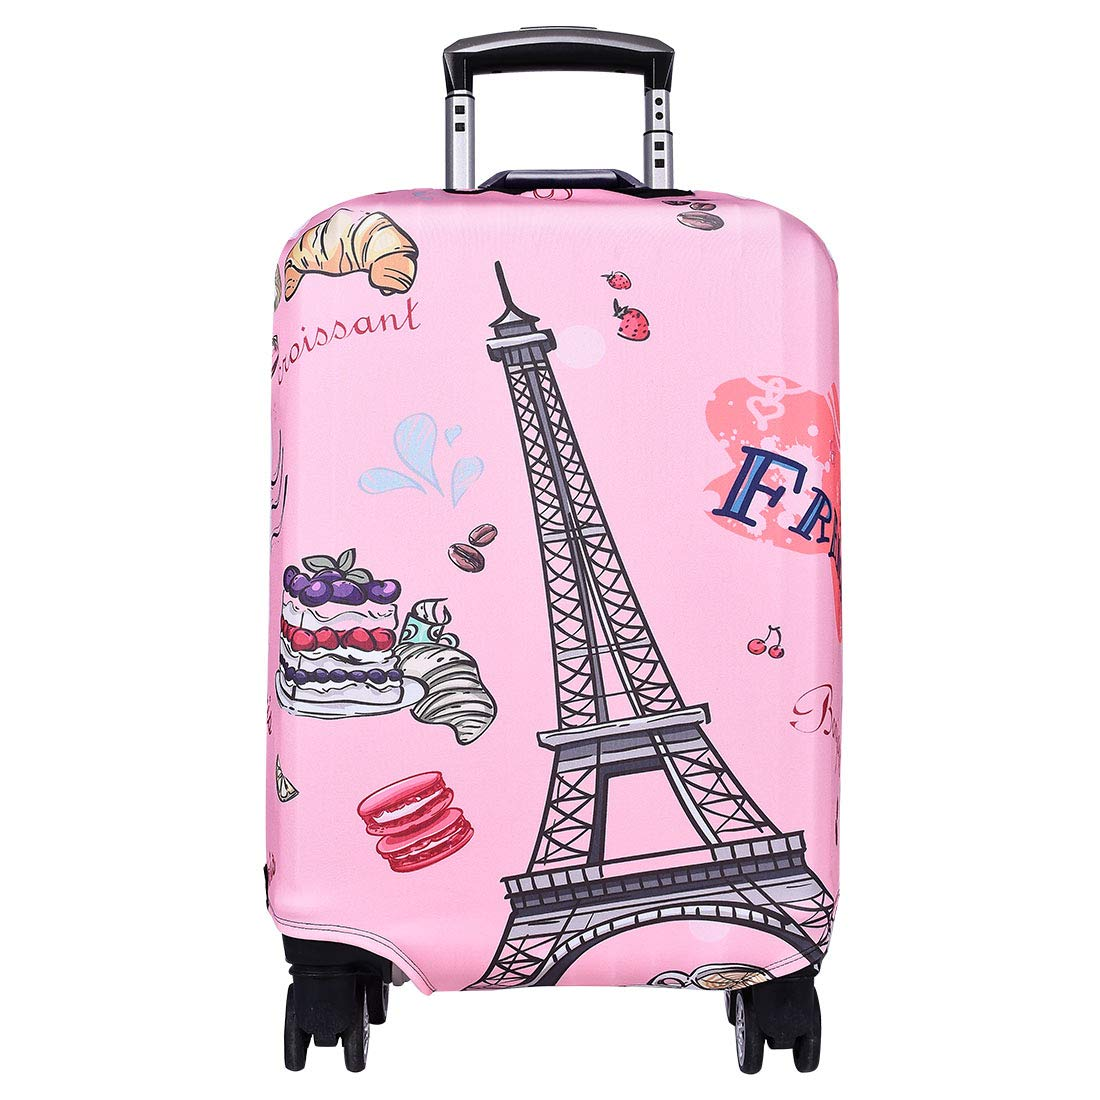 Travel Luggage Cover Anti-scratch Baggage Suitcase Protector Cover Fits 18-32 Inch 3D Colorful Pattern(Eiffel tower)